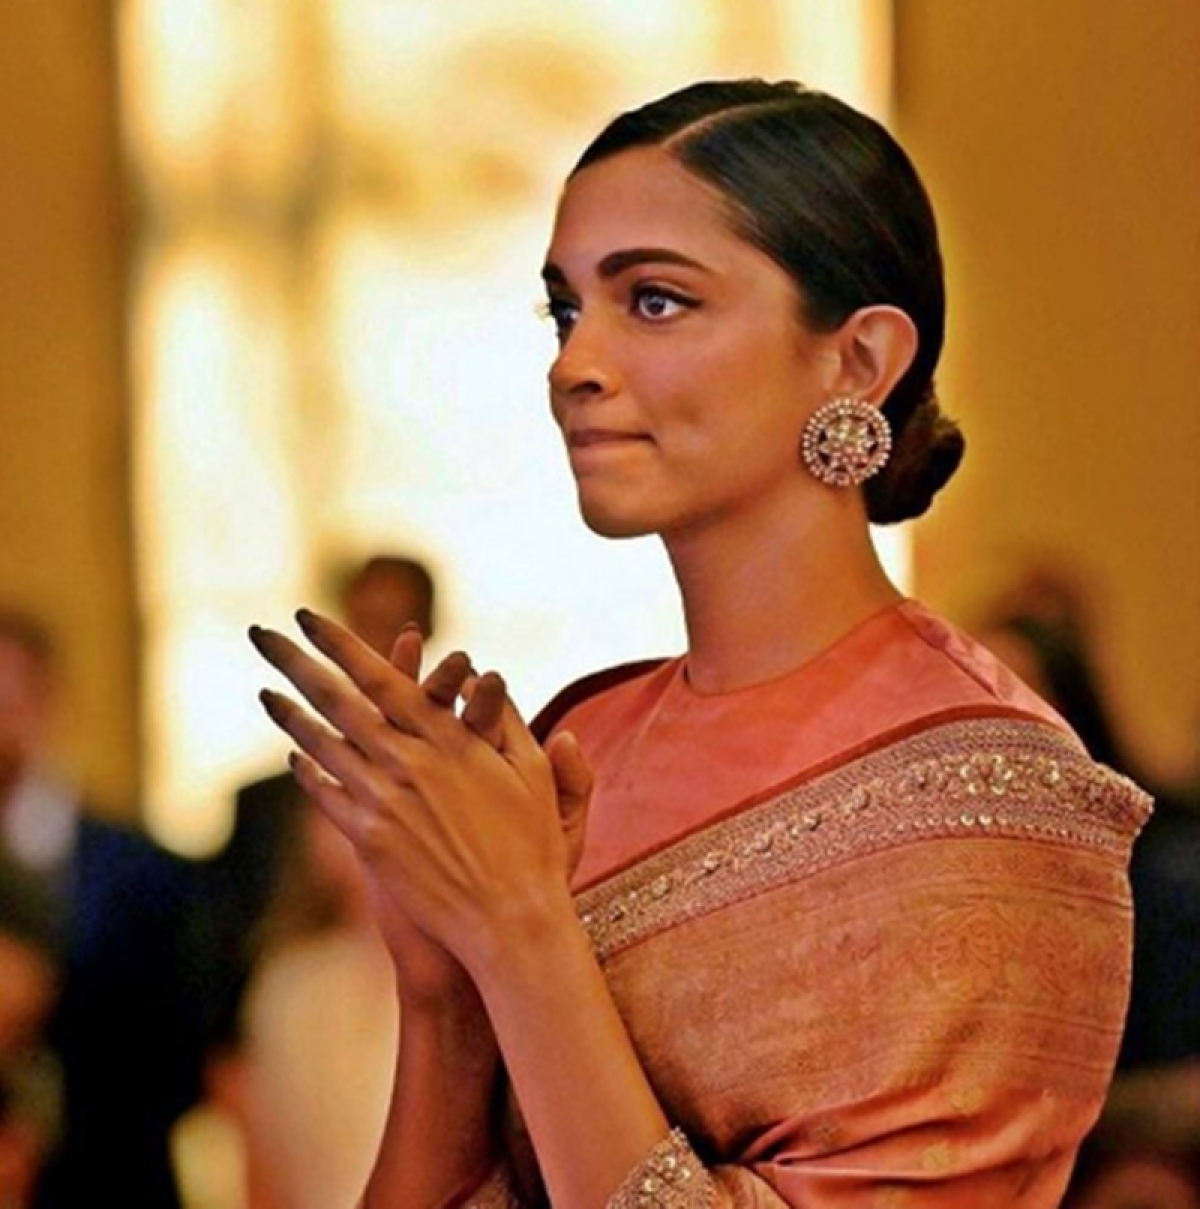 Deepika Padukone isn't sorry for being spotted while crying; read what she said